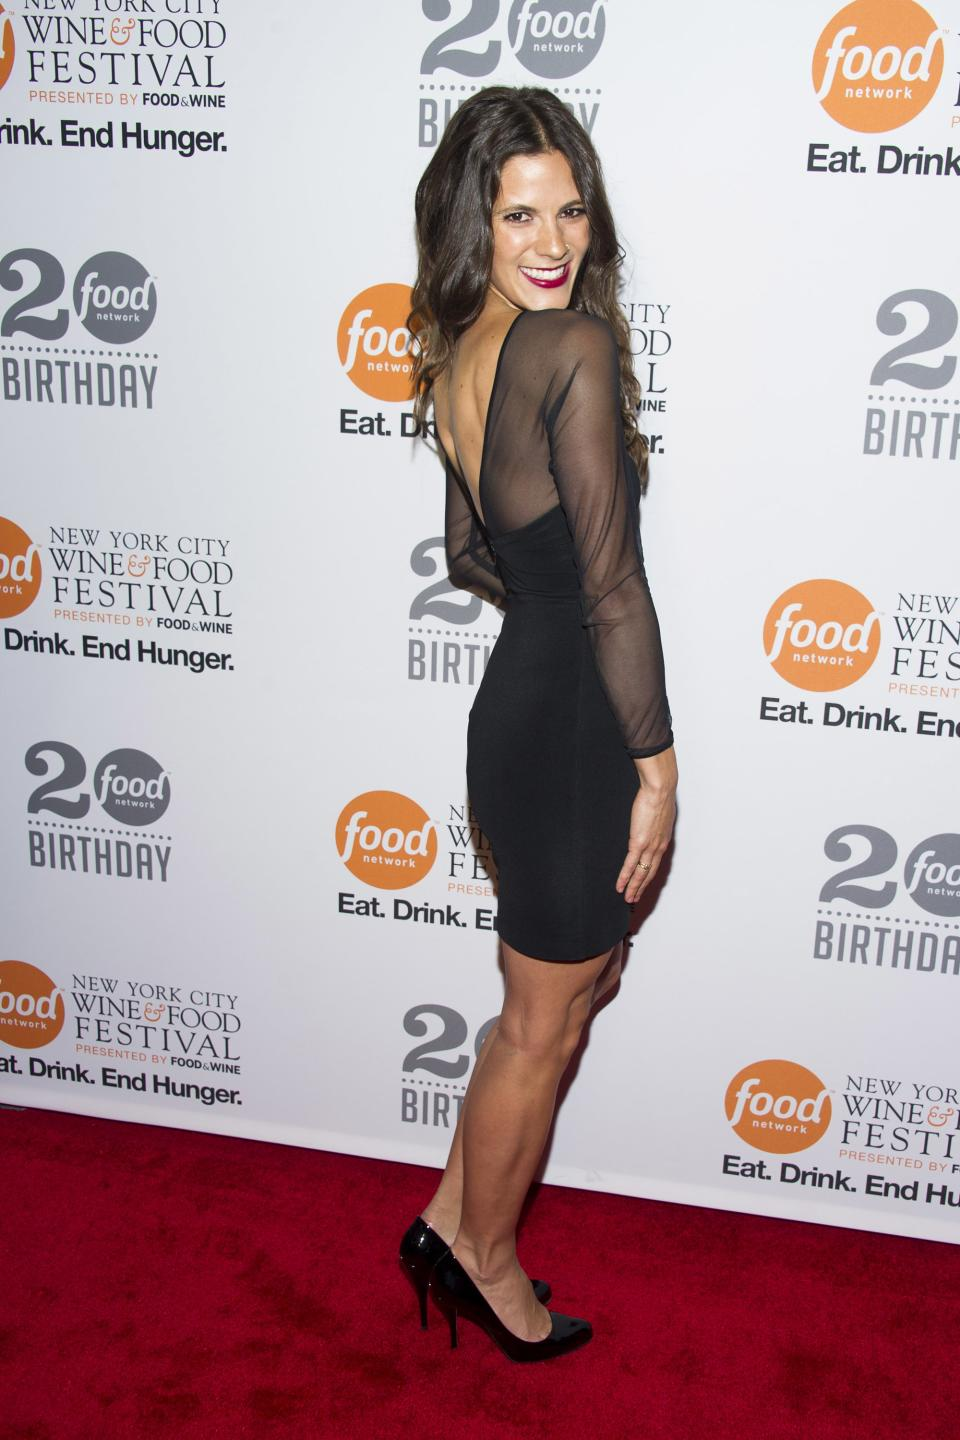 Eden Grinshpan attends the Food Network's 20th birthday party on Thursday, Oct. 17, 2013, in New York. (Photo by Charles Sykes/Invision/AP)